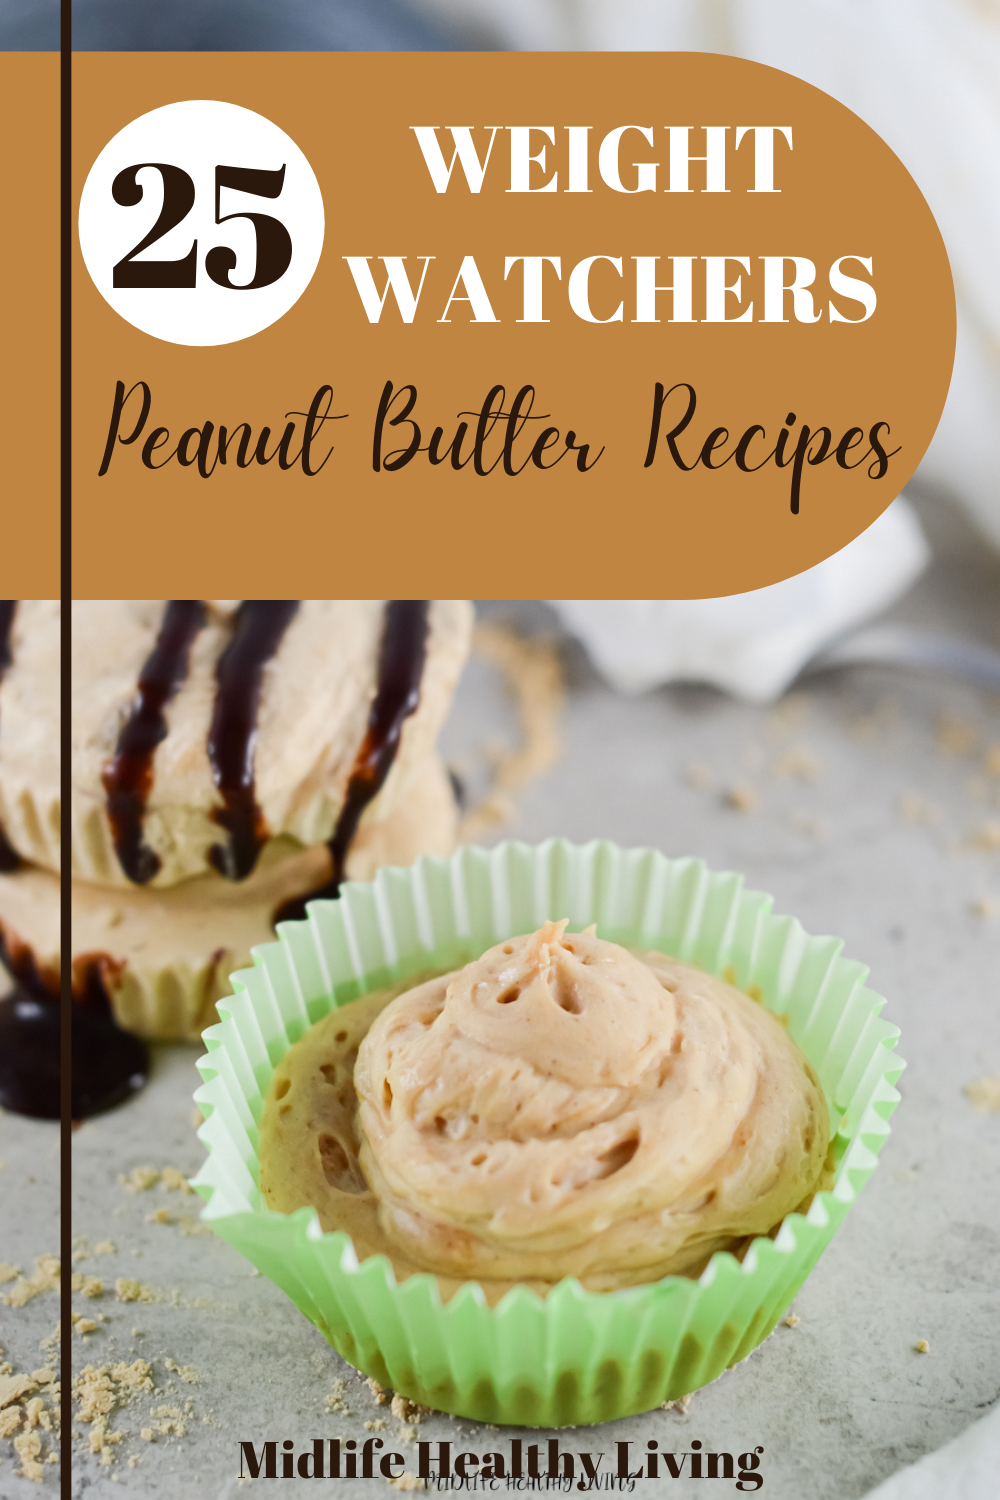 Pin showing the title of 25 weight watchers peanut butter recipes with a peanut butter recipe in background ready to eat.